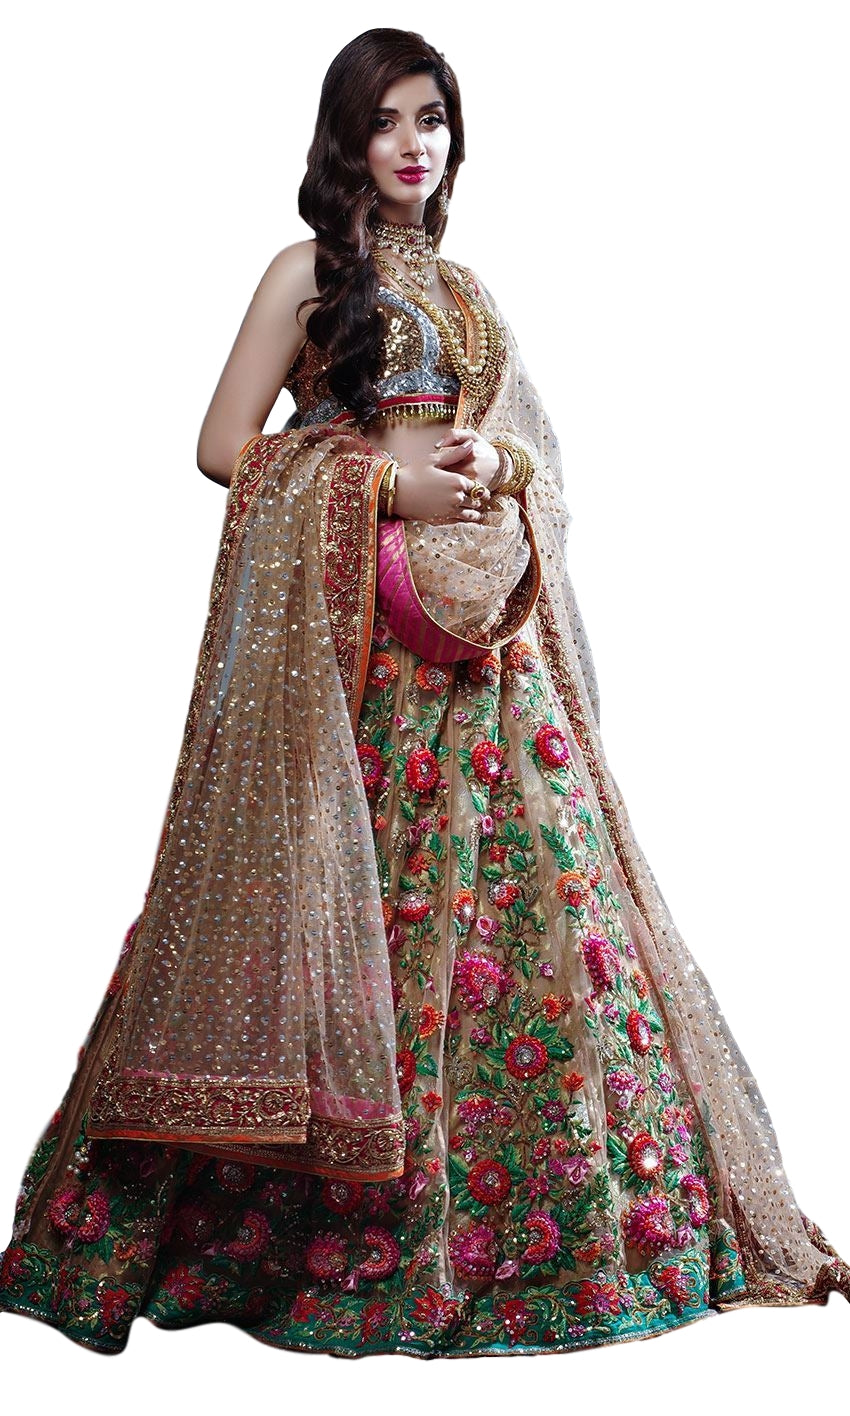 Champagne Color Wedding Lehenga with Floral Embroidery by Panache Haute Couture